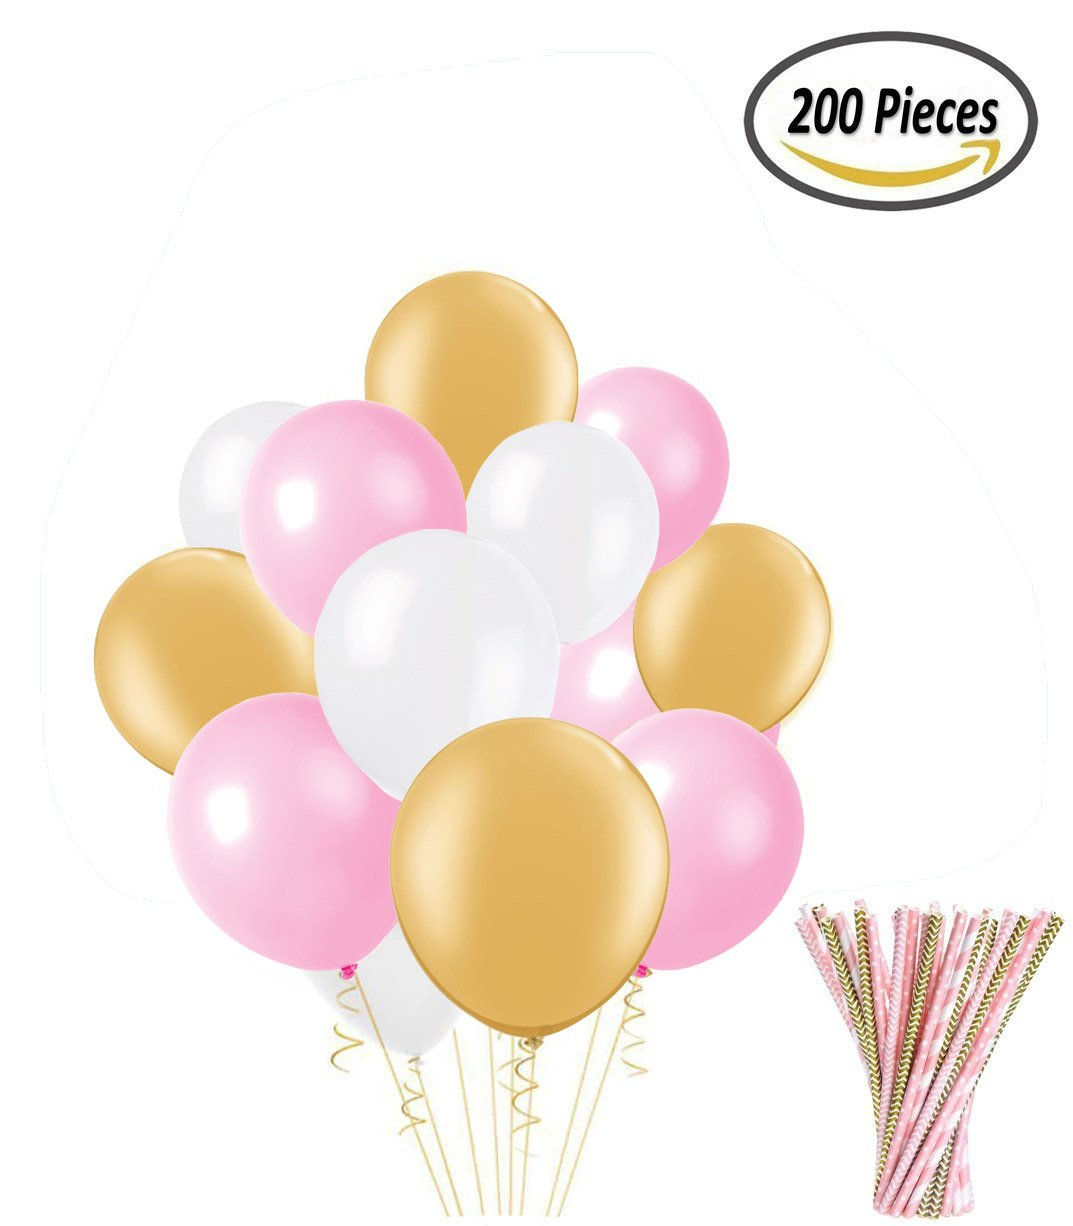 200 Pcs Pink and Gold Latex Party Balloons and Paper Straws for Birthday Wedding Party Decorations